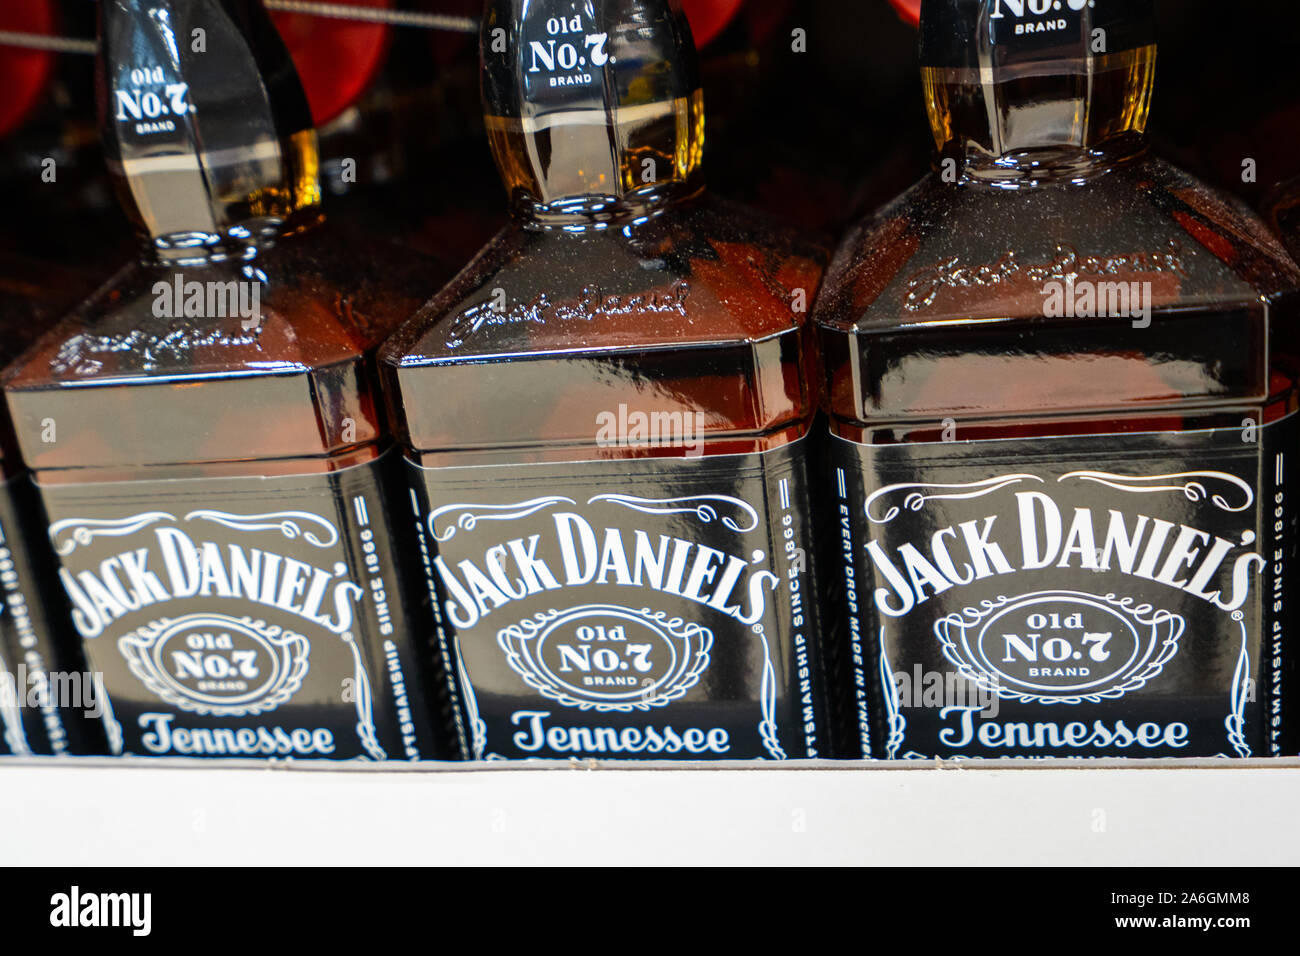 Bottles of Jack Daniels Tennessee Whiskey on sale at Christmas time Stock Photo